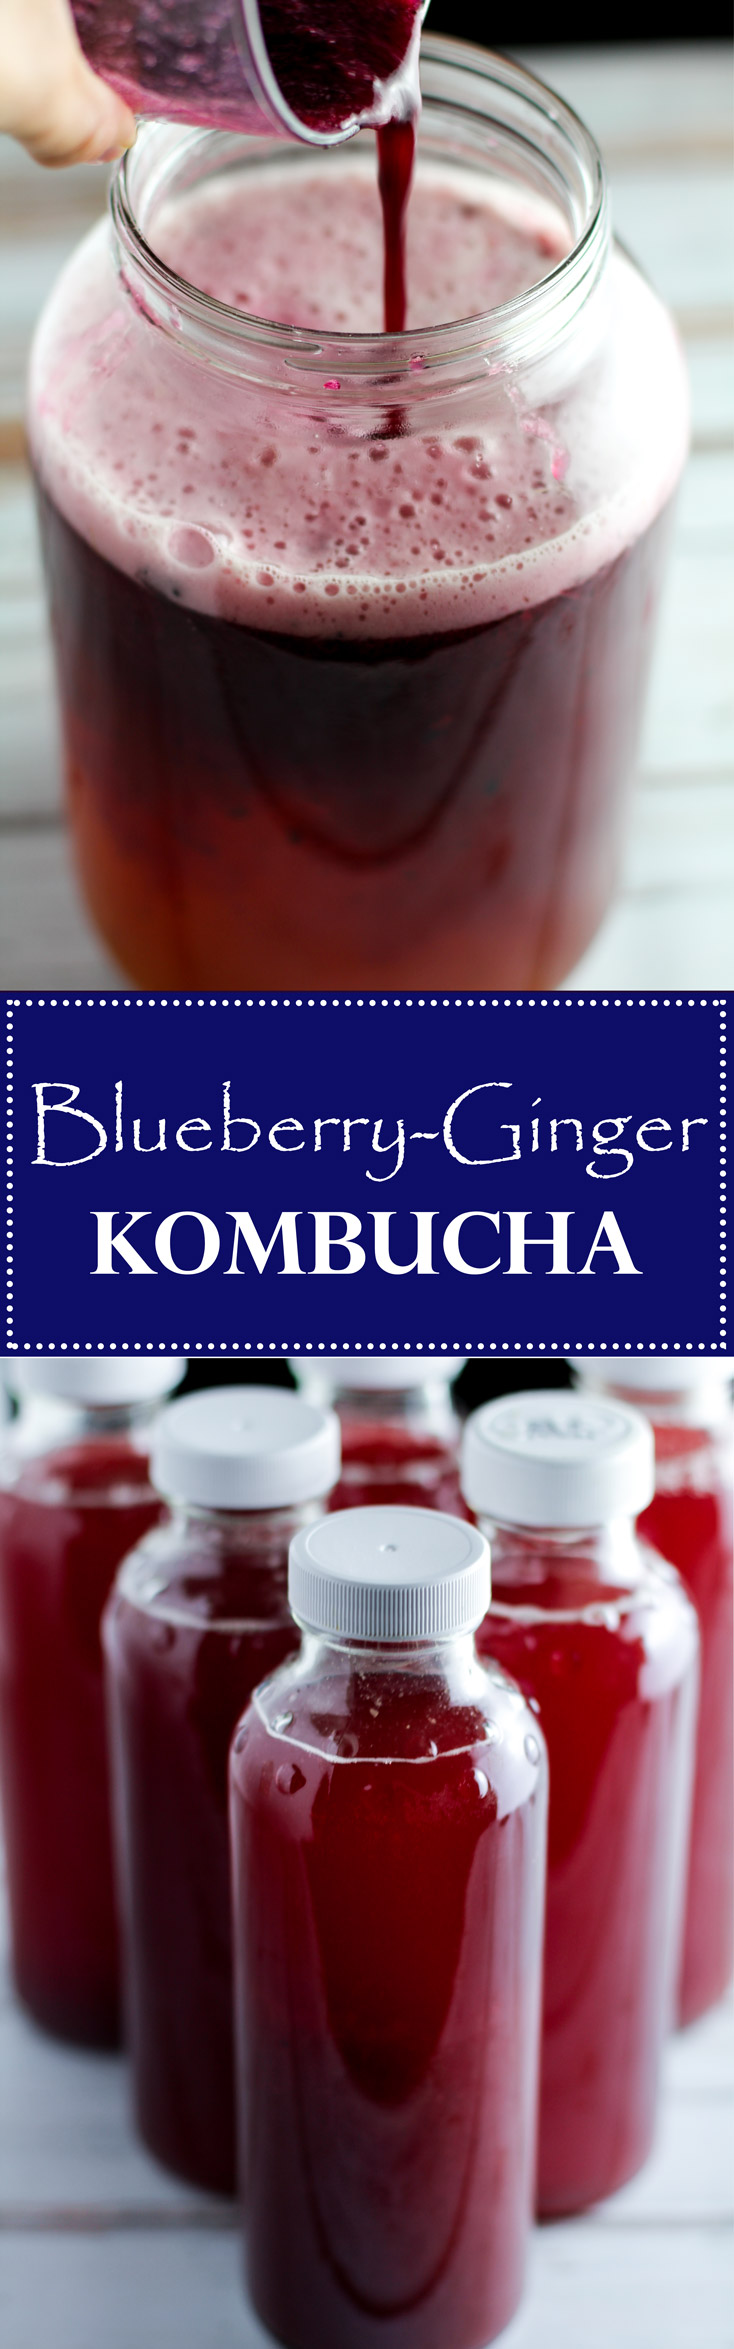 This flavored Blueberry Ginger Kombucha recipe is a tasty way to flavor your own homemade kombucha, a health drink full of nutrients and probiotics!